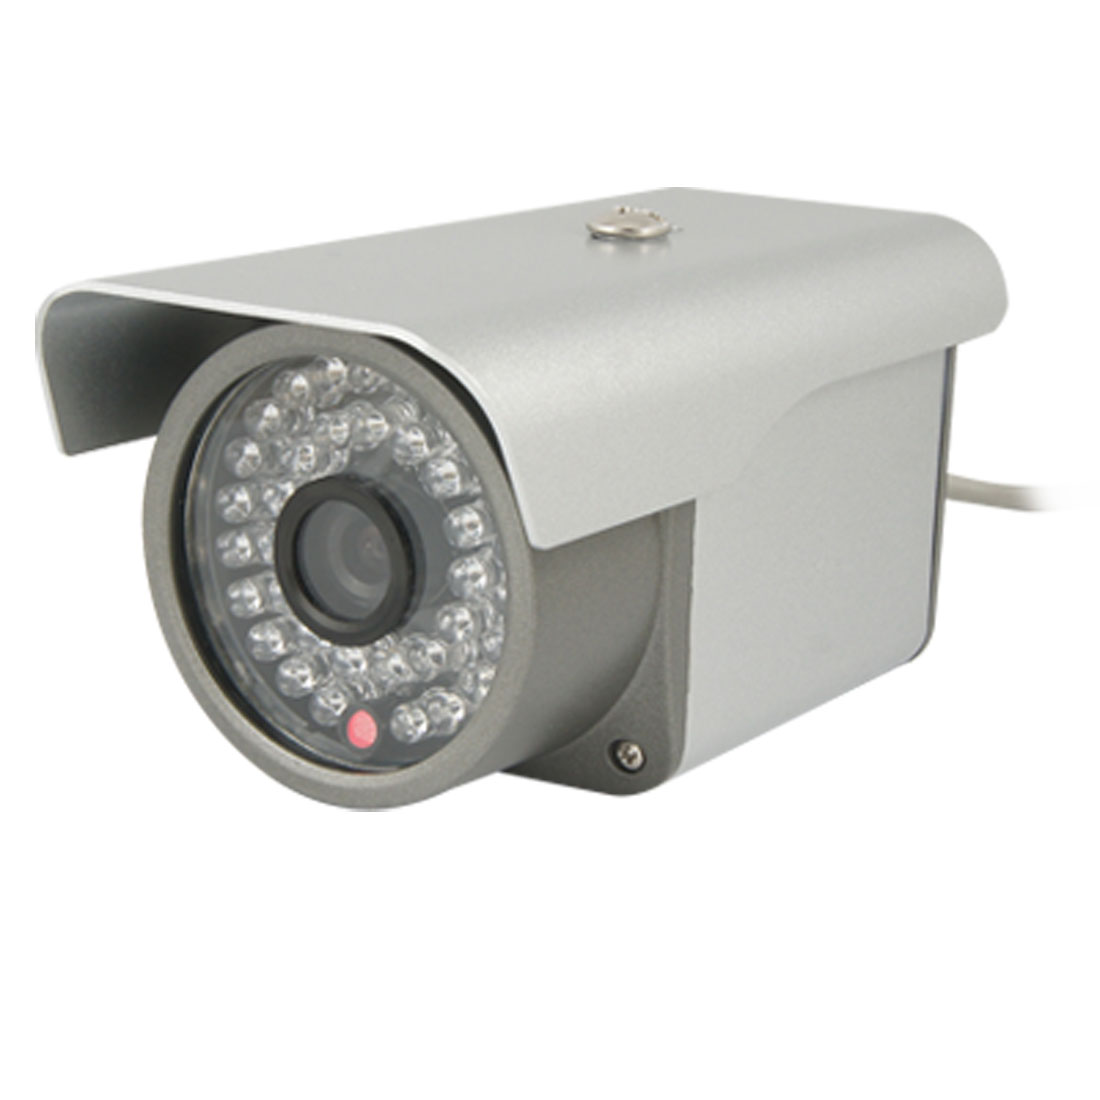 DC 12V 6mm 60 Lens Degree Infrared Security CCD Video Camera